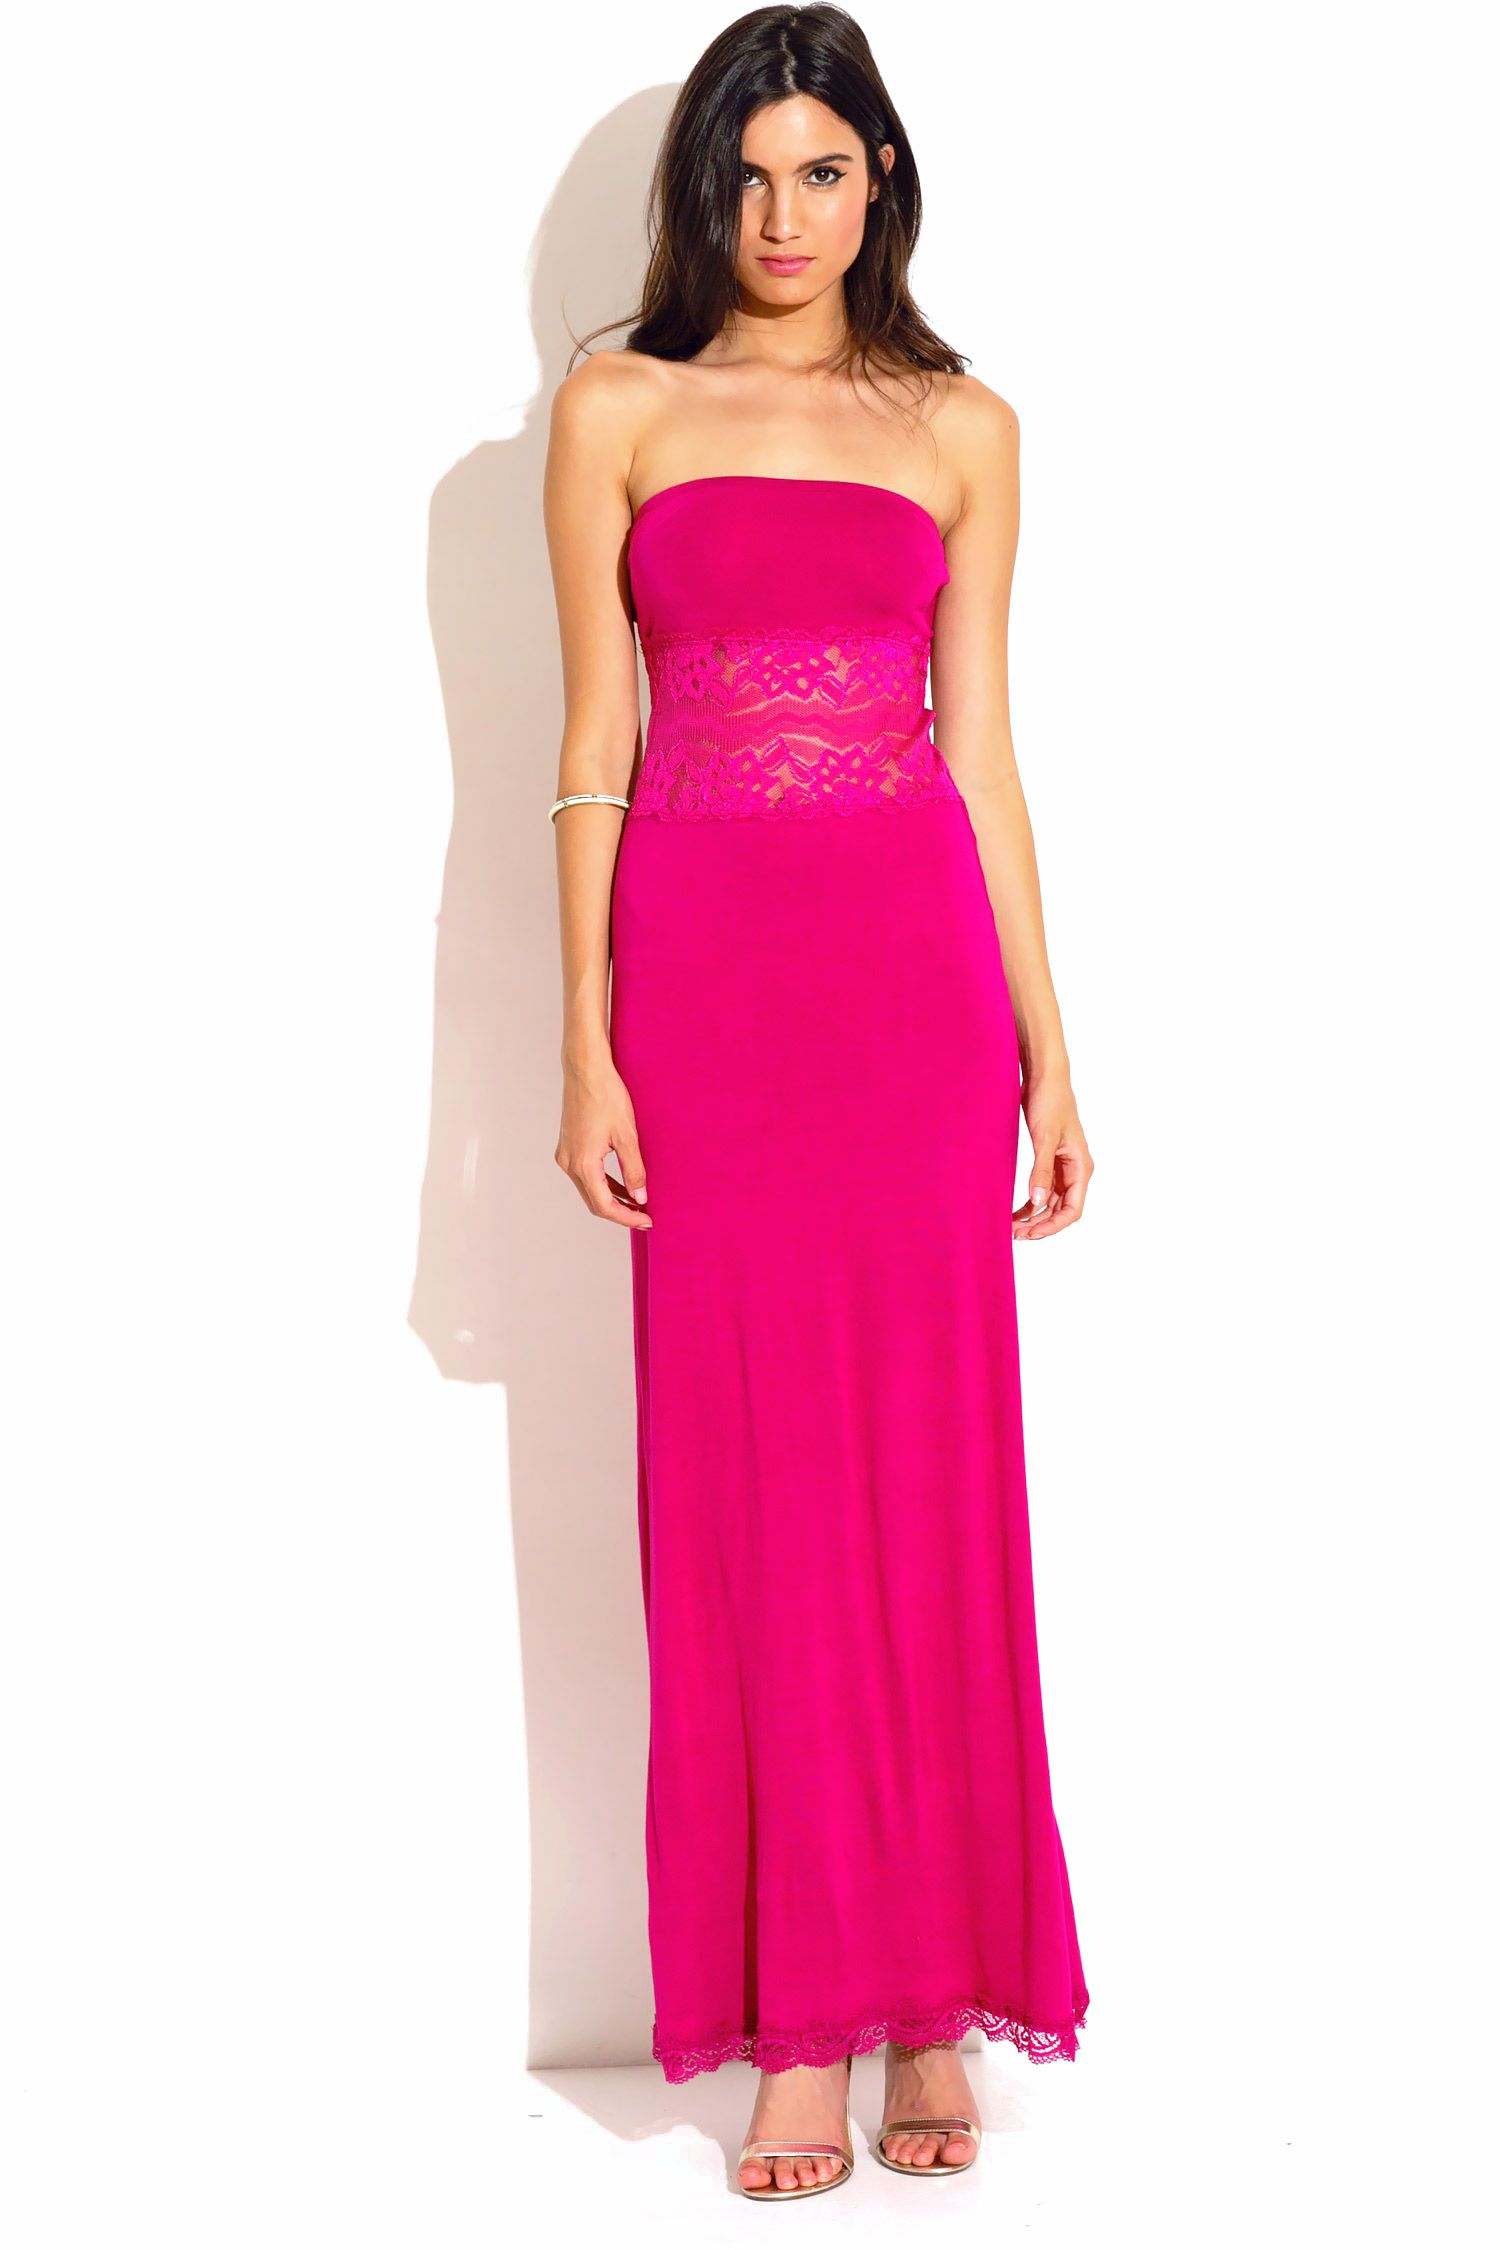 Greek Island - Trendy Cute magenta hot pink strapless lace inset ...